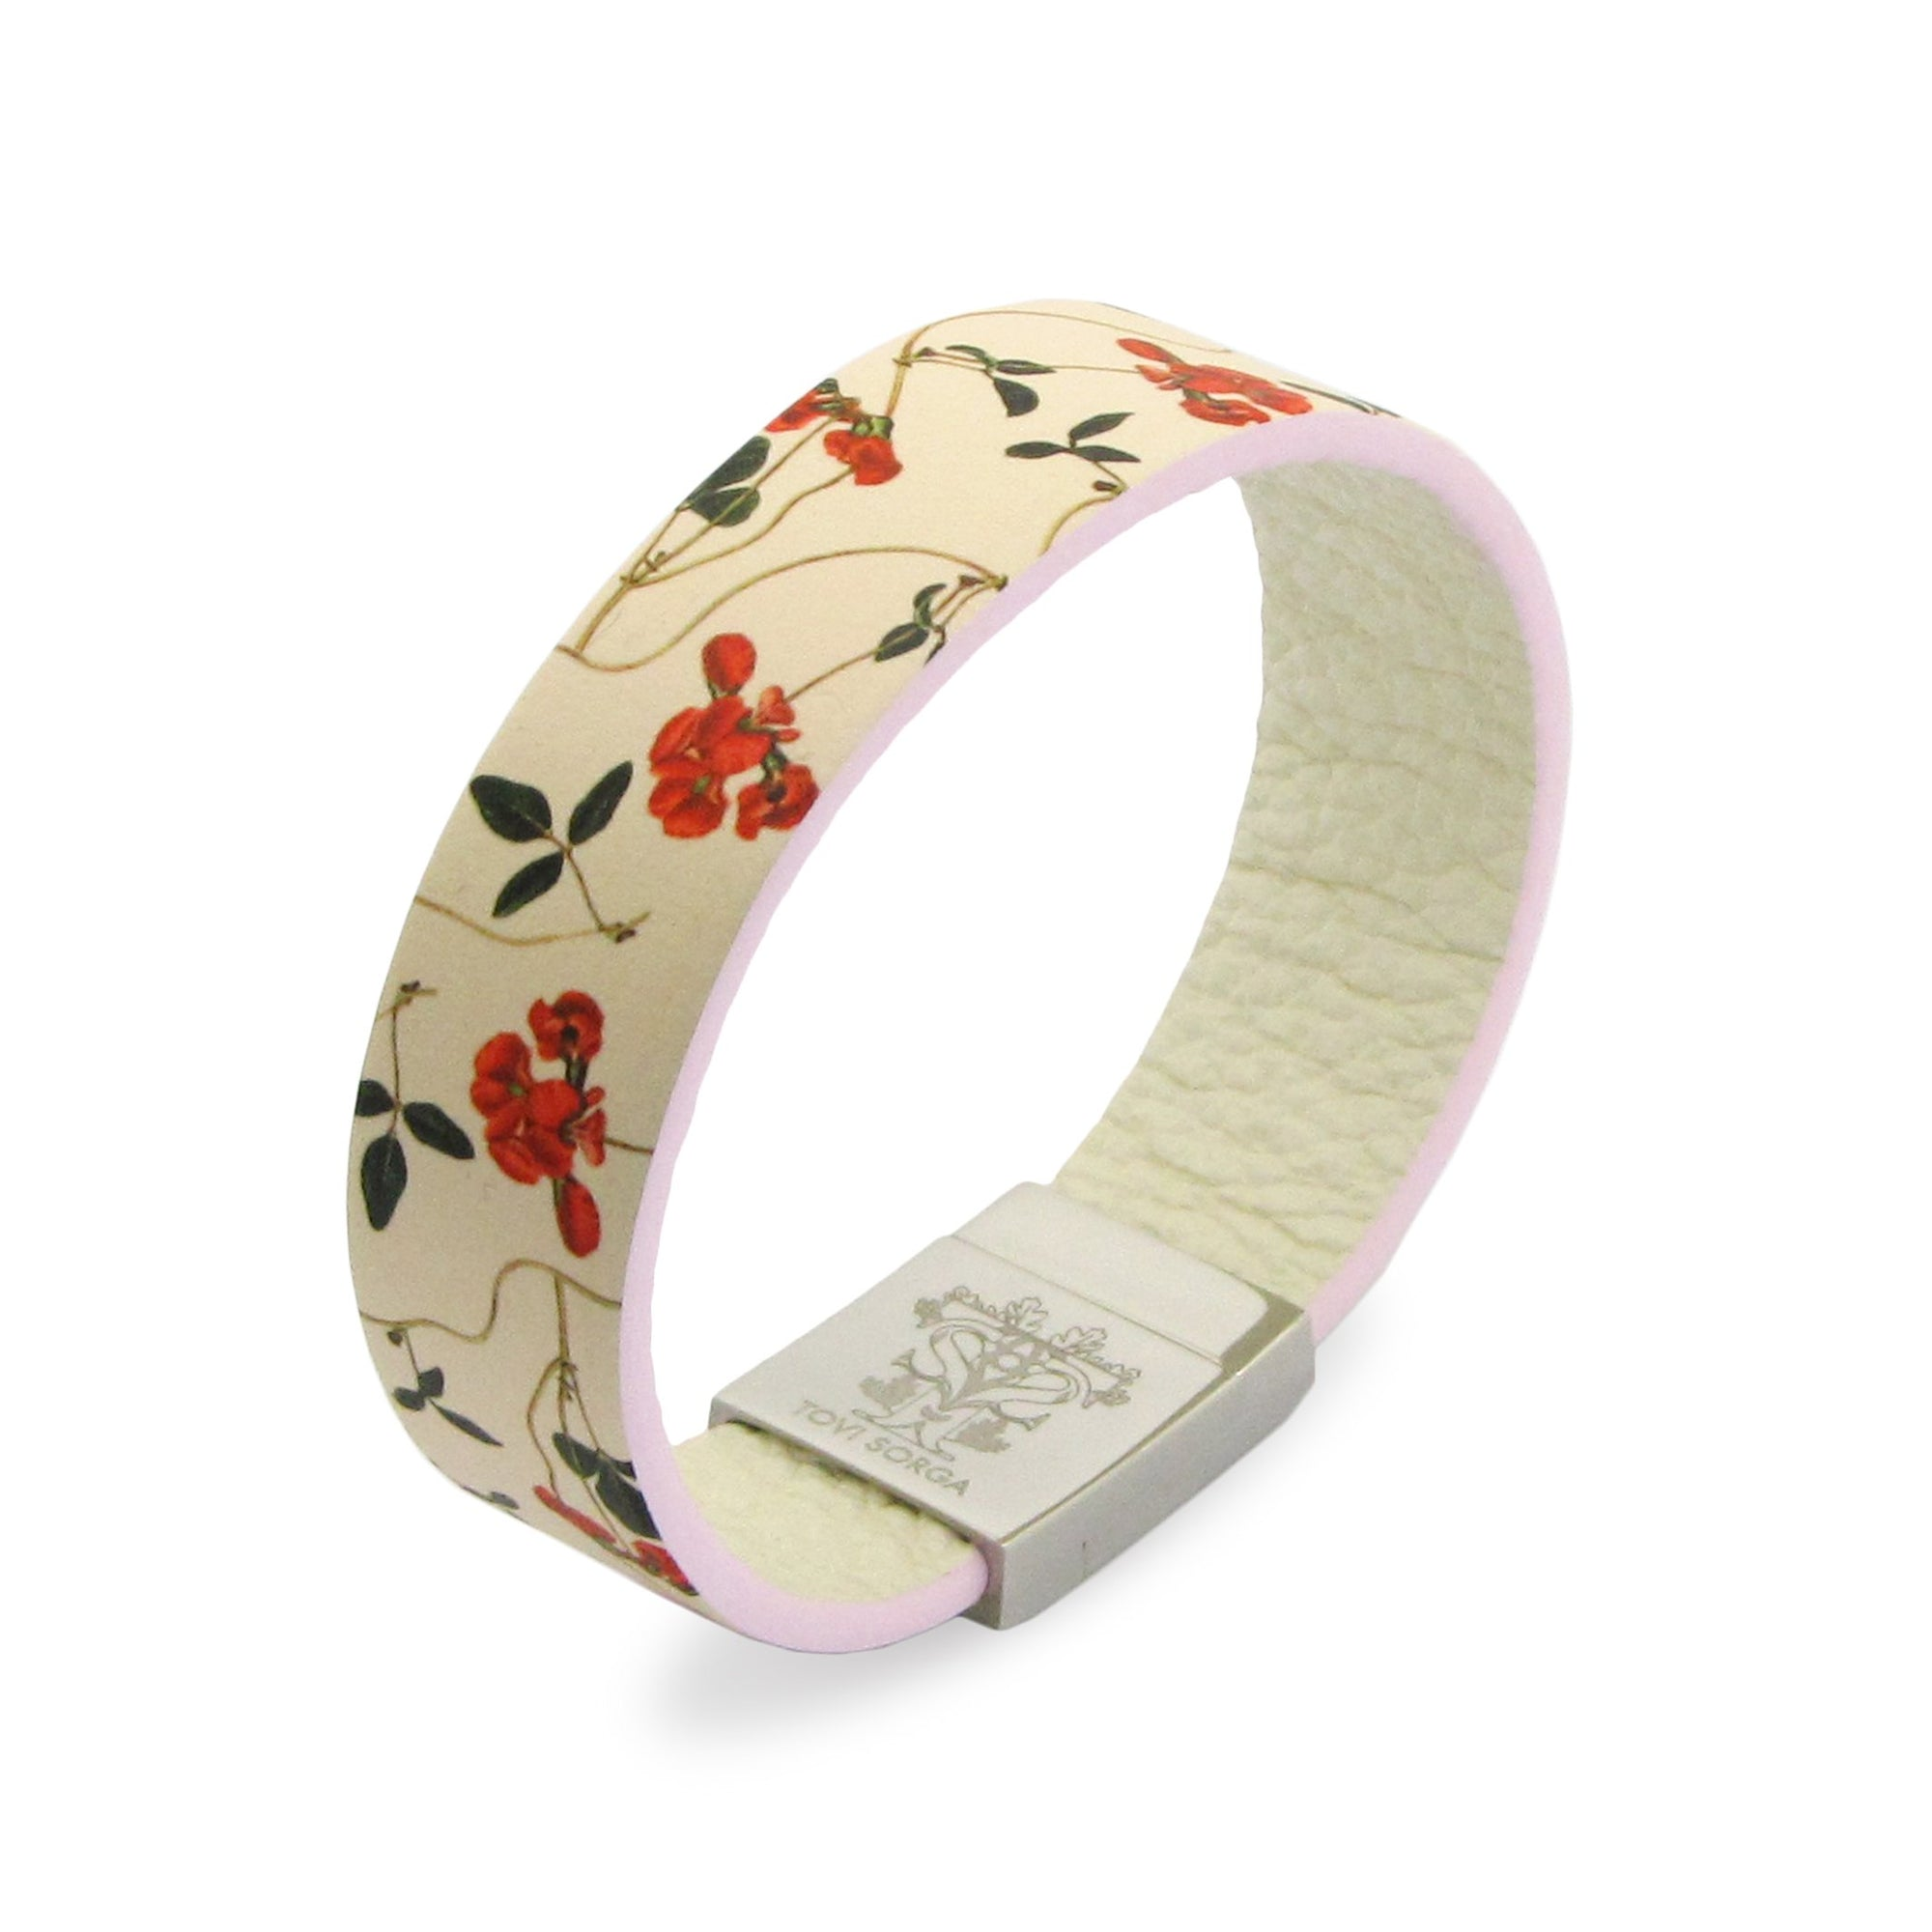 Leather Contactless Payment Bracelet: Sweet Pea